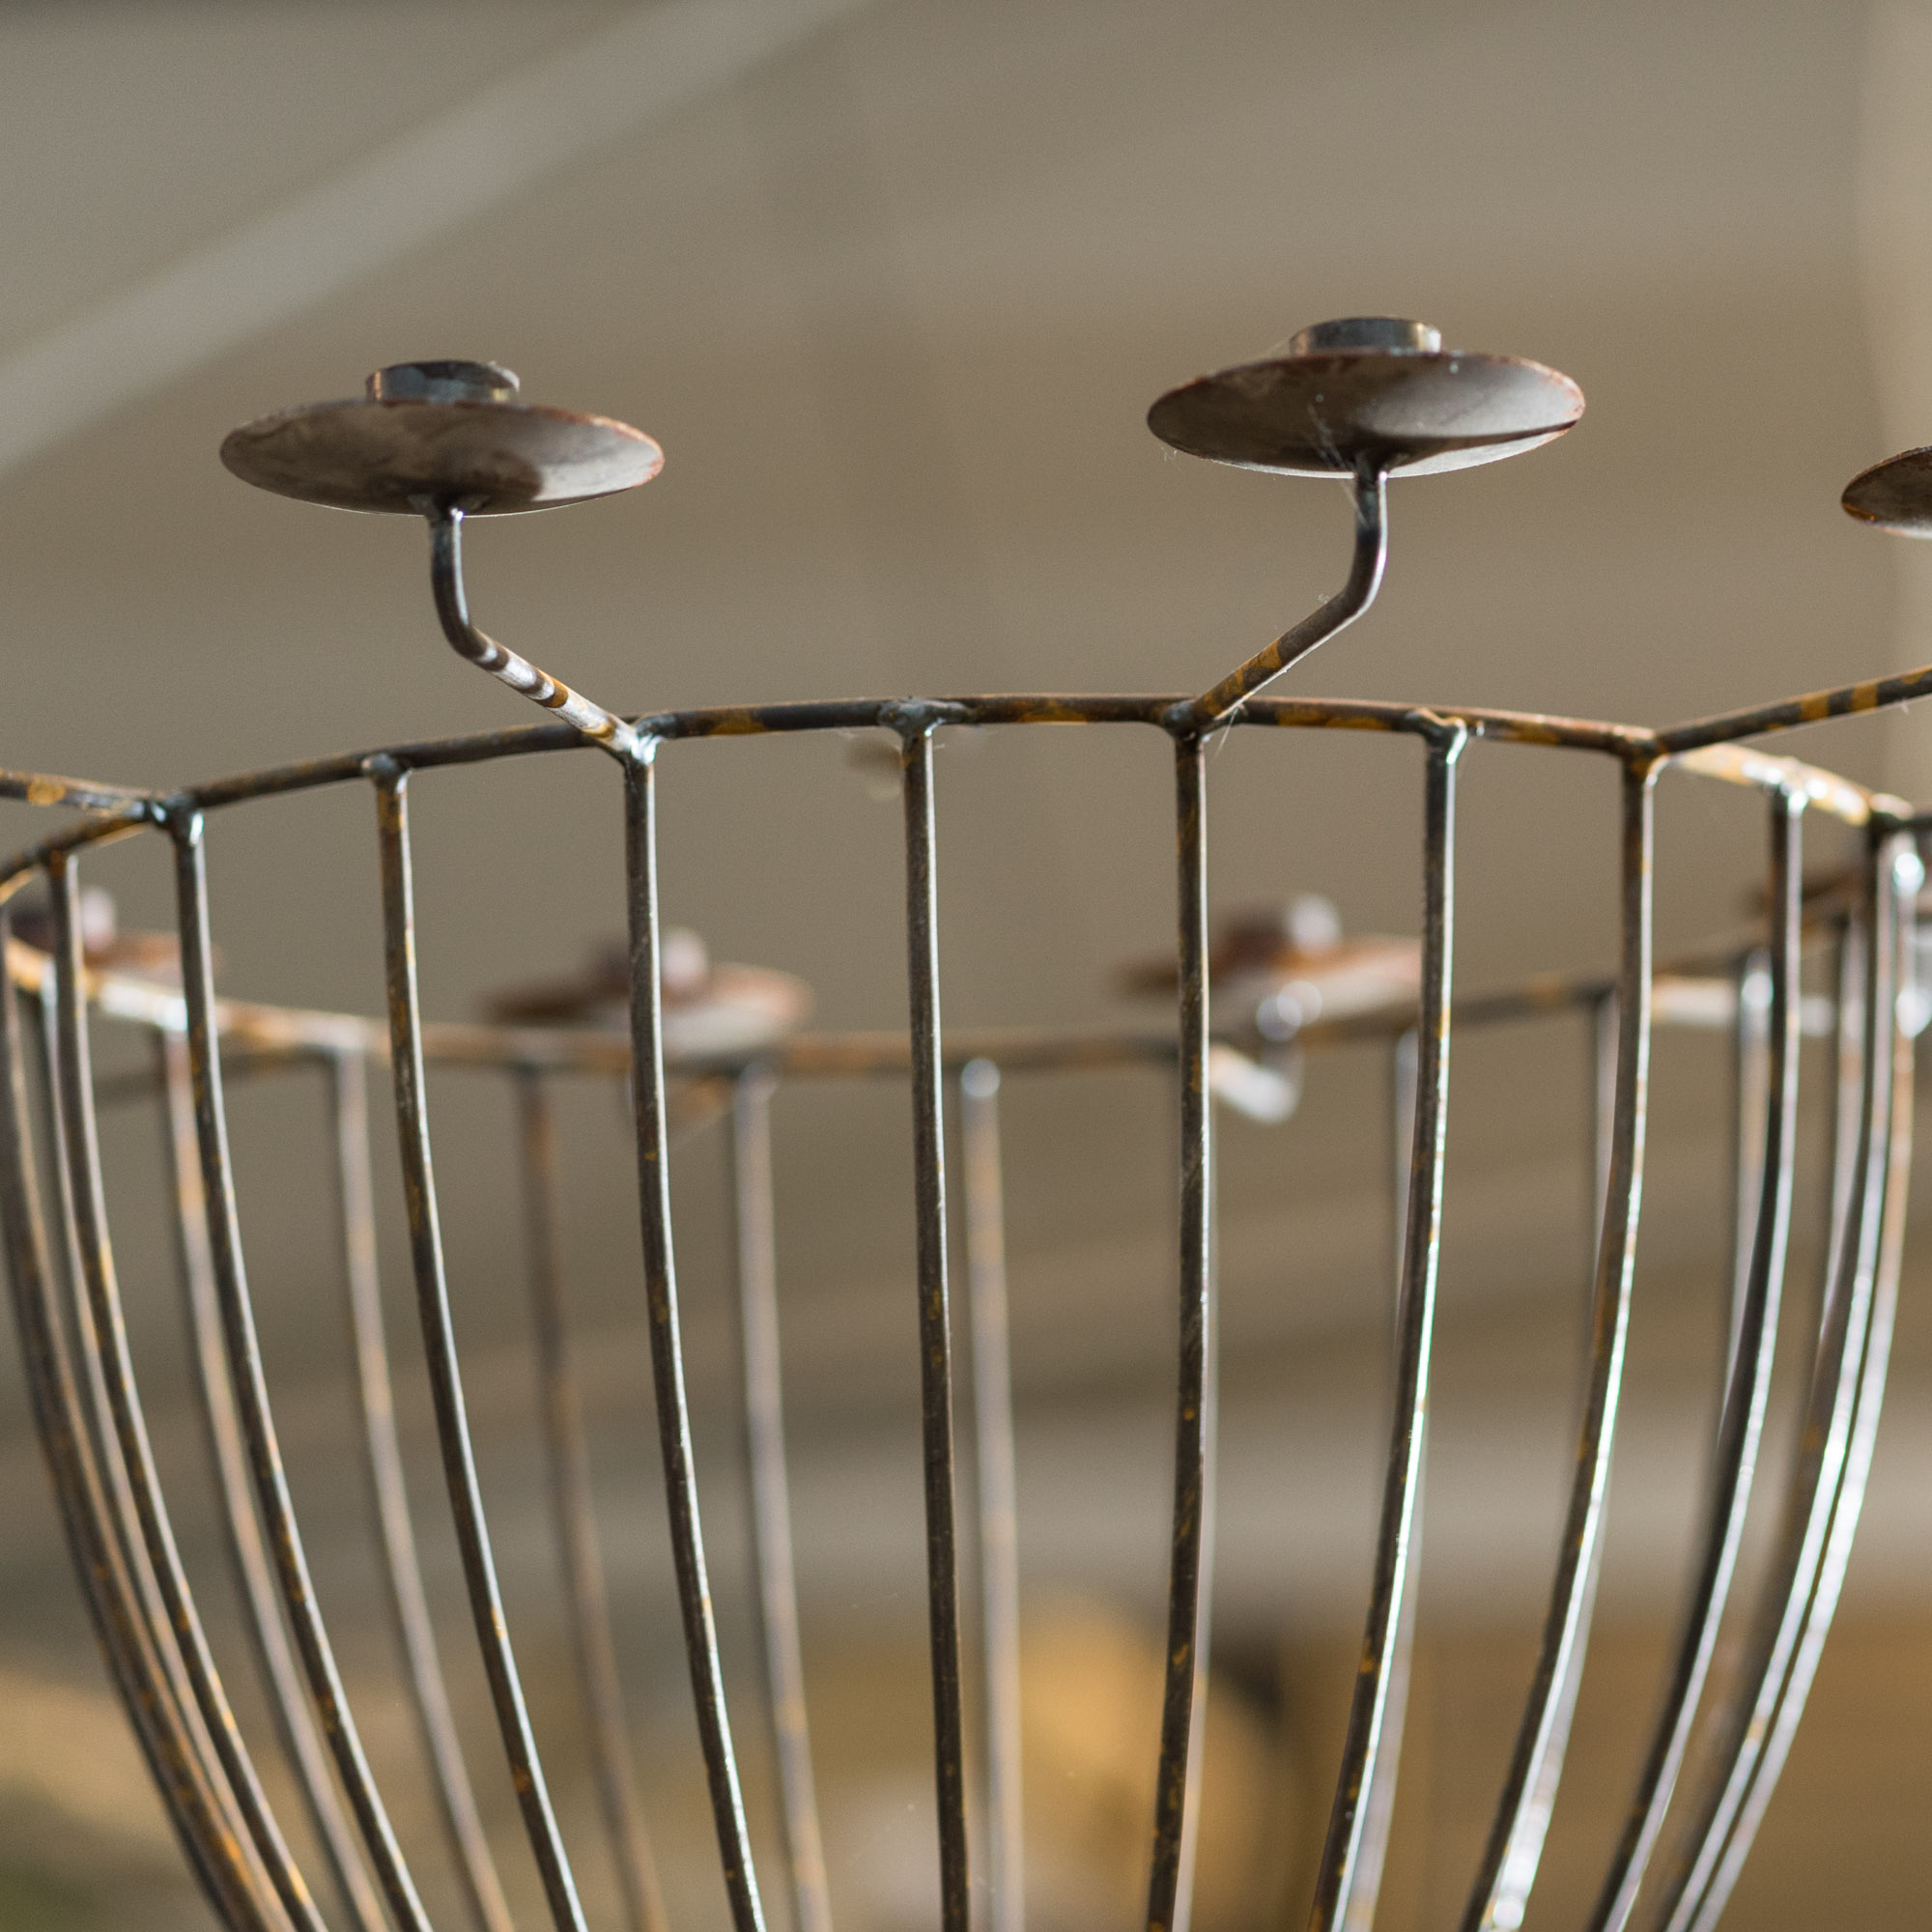 Standing Chandelier – 12 Candles